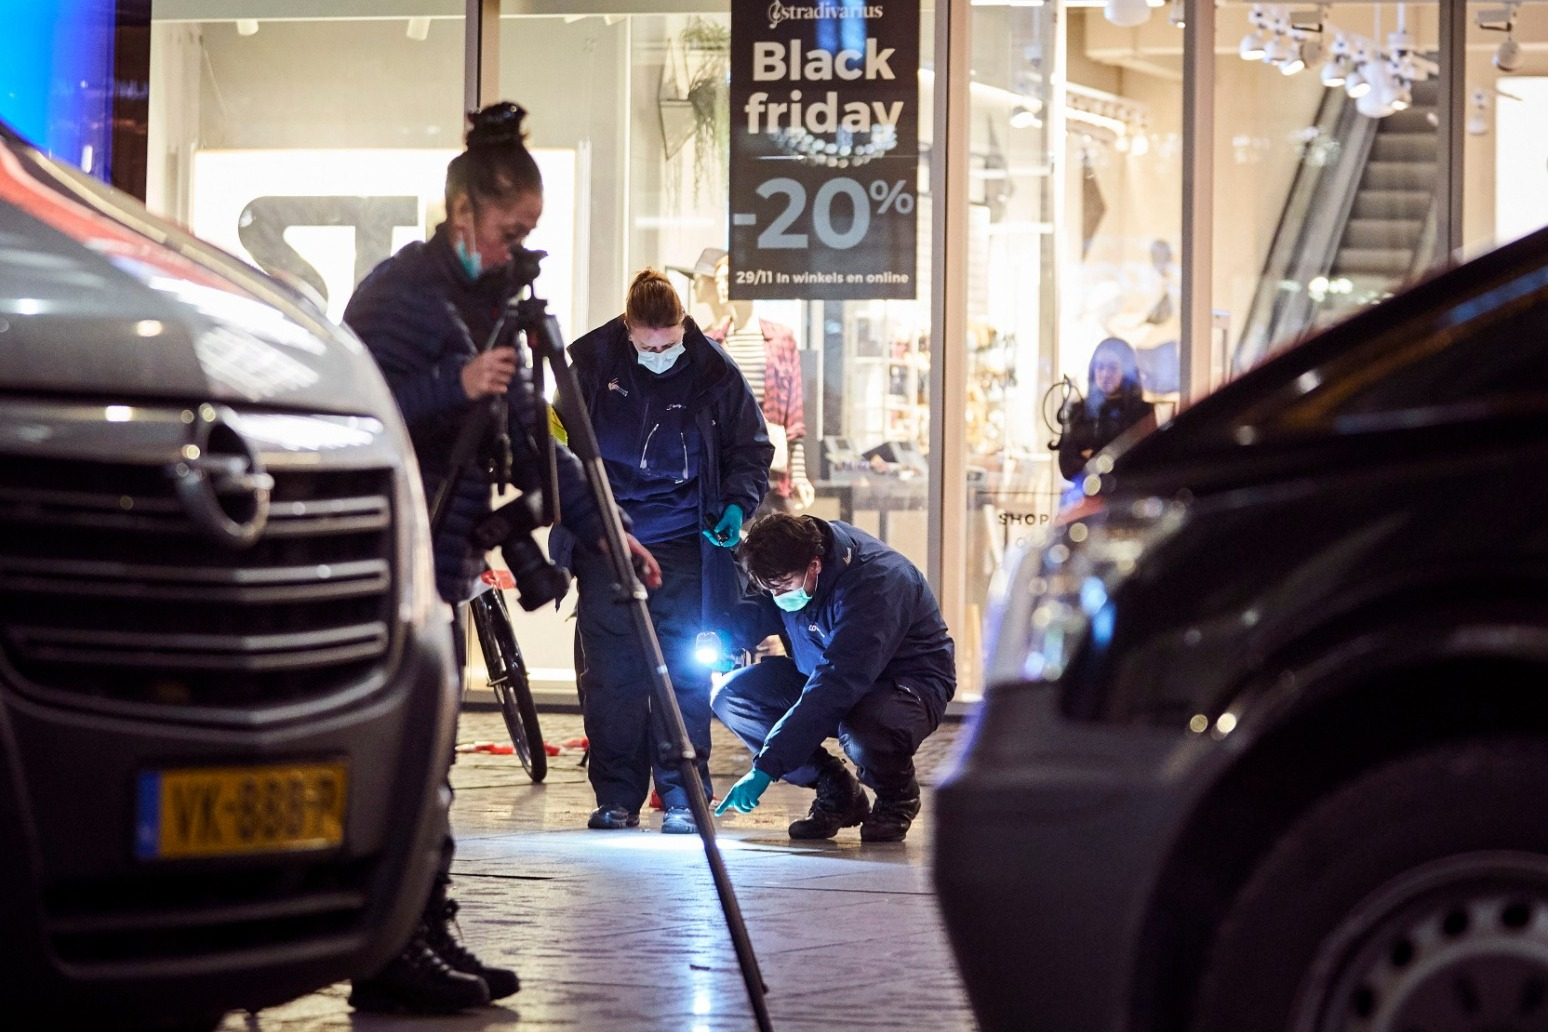 MAN ARRESTED AFTER TEENAGERS INJURED IN HAGUE STABBING